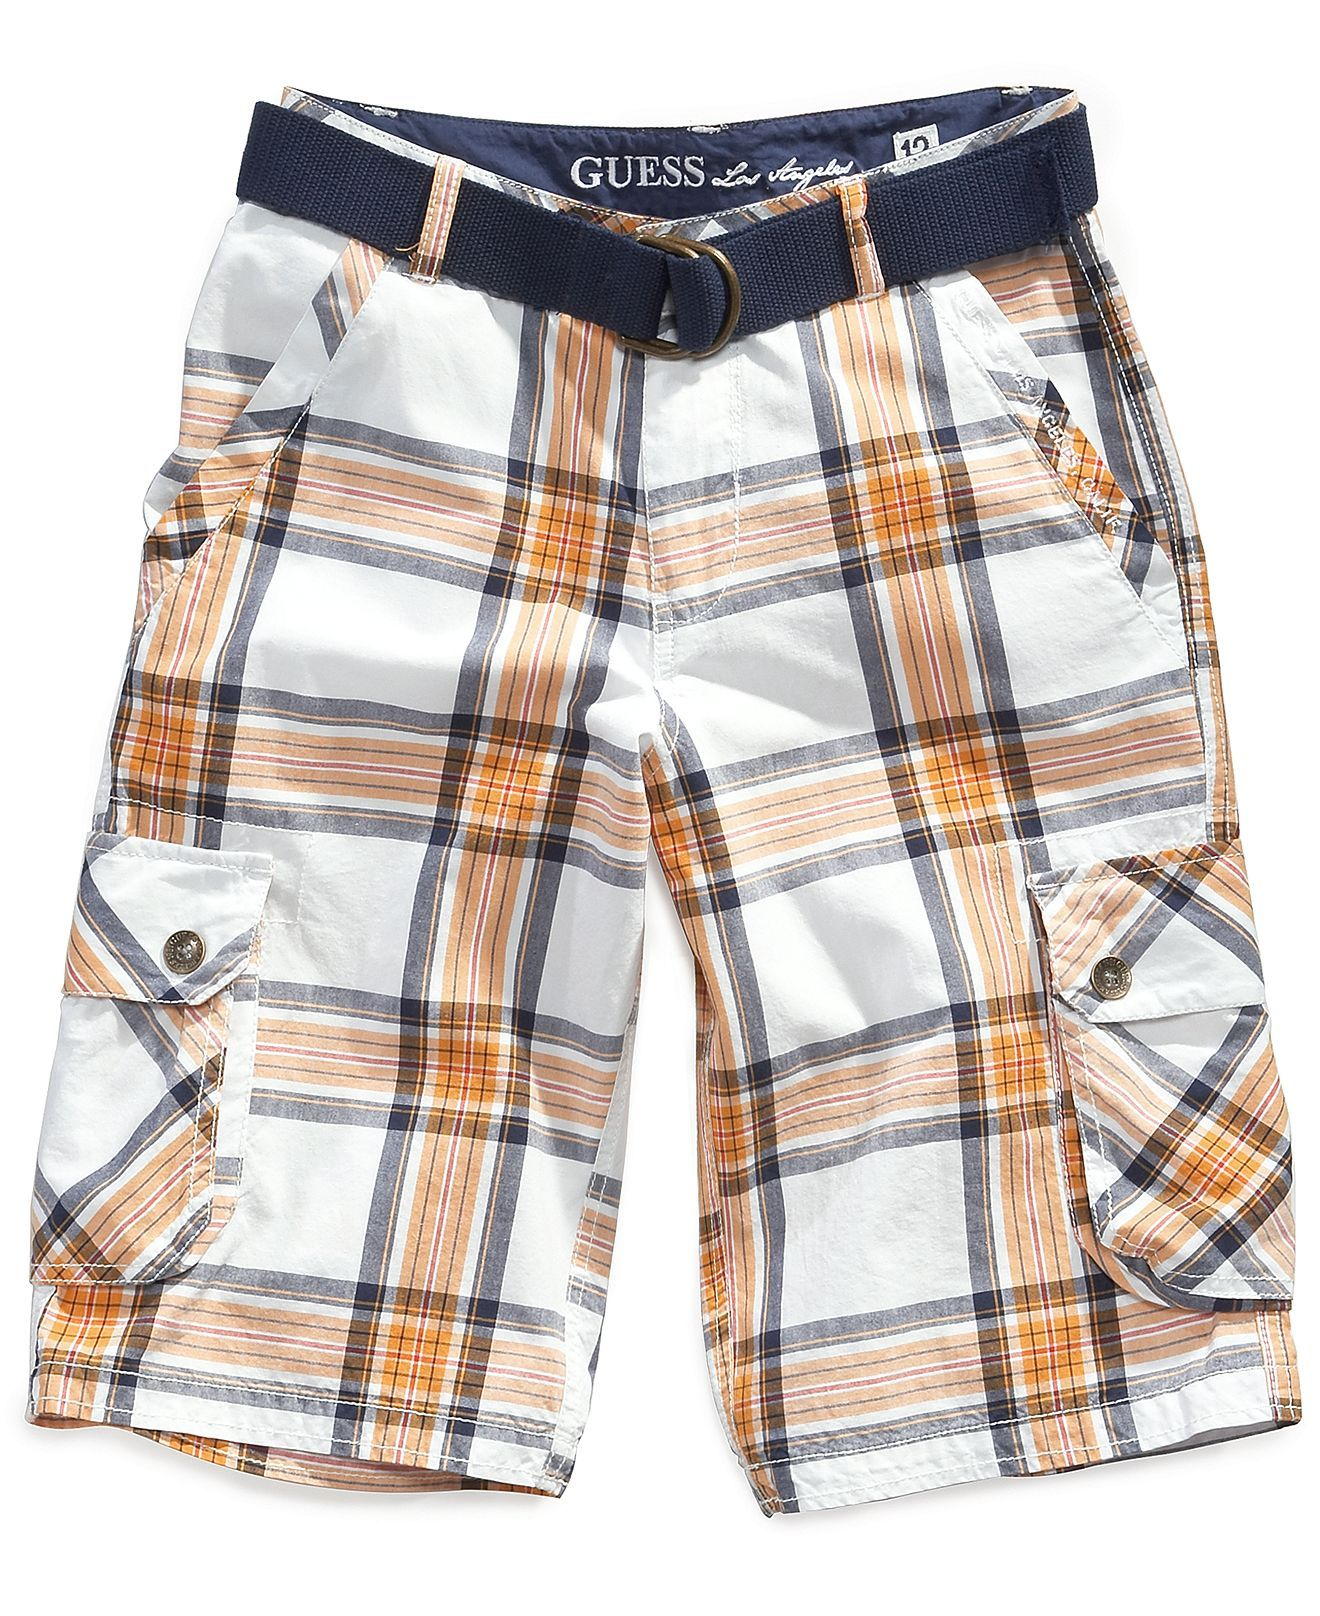 GUESS Kids Shorts Little Boys Anthony Plaid Cargo Shorts Kids